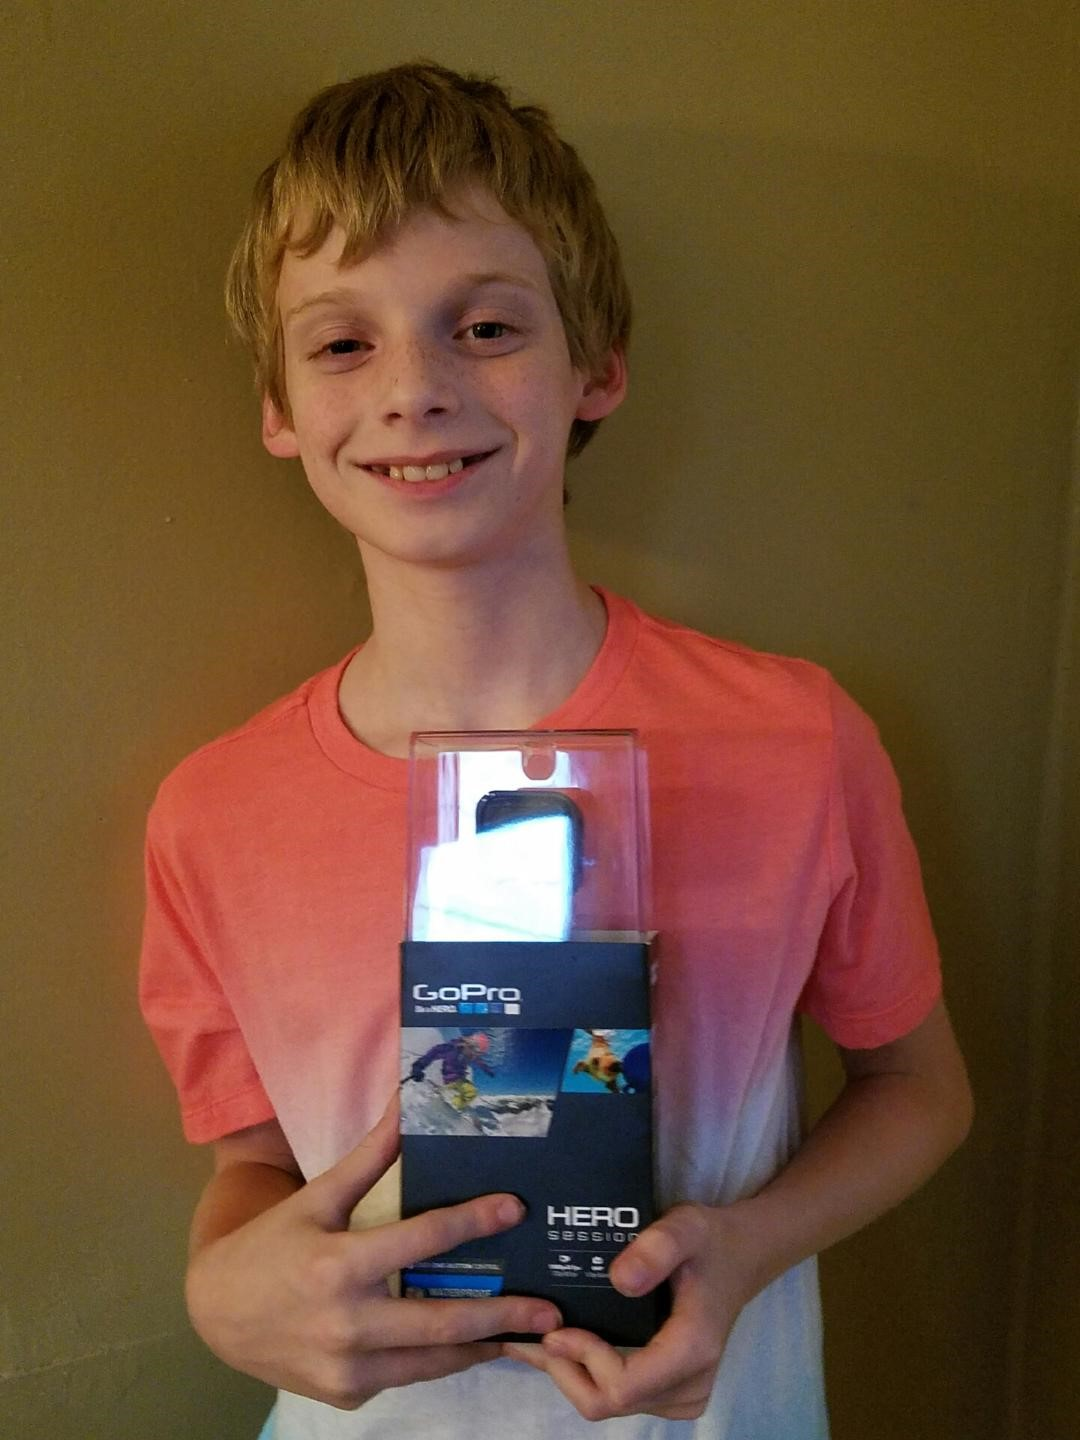 Gage P. in 6th grade is the winner of the Back to School Night Go Pro camera. Cool.